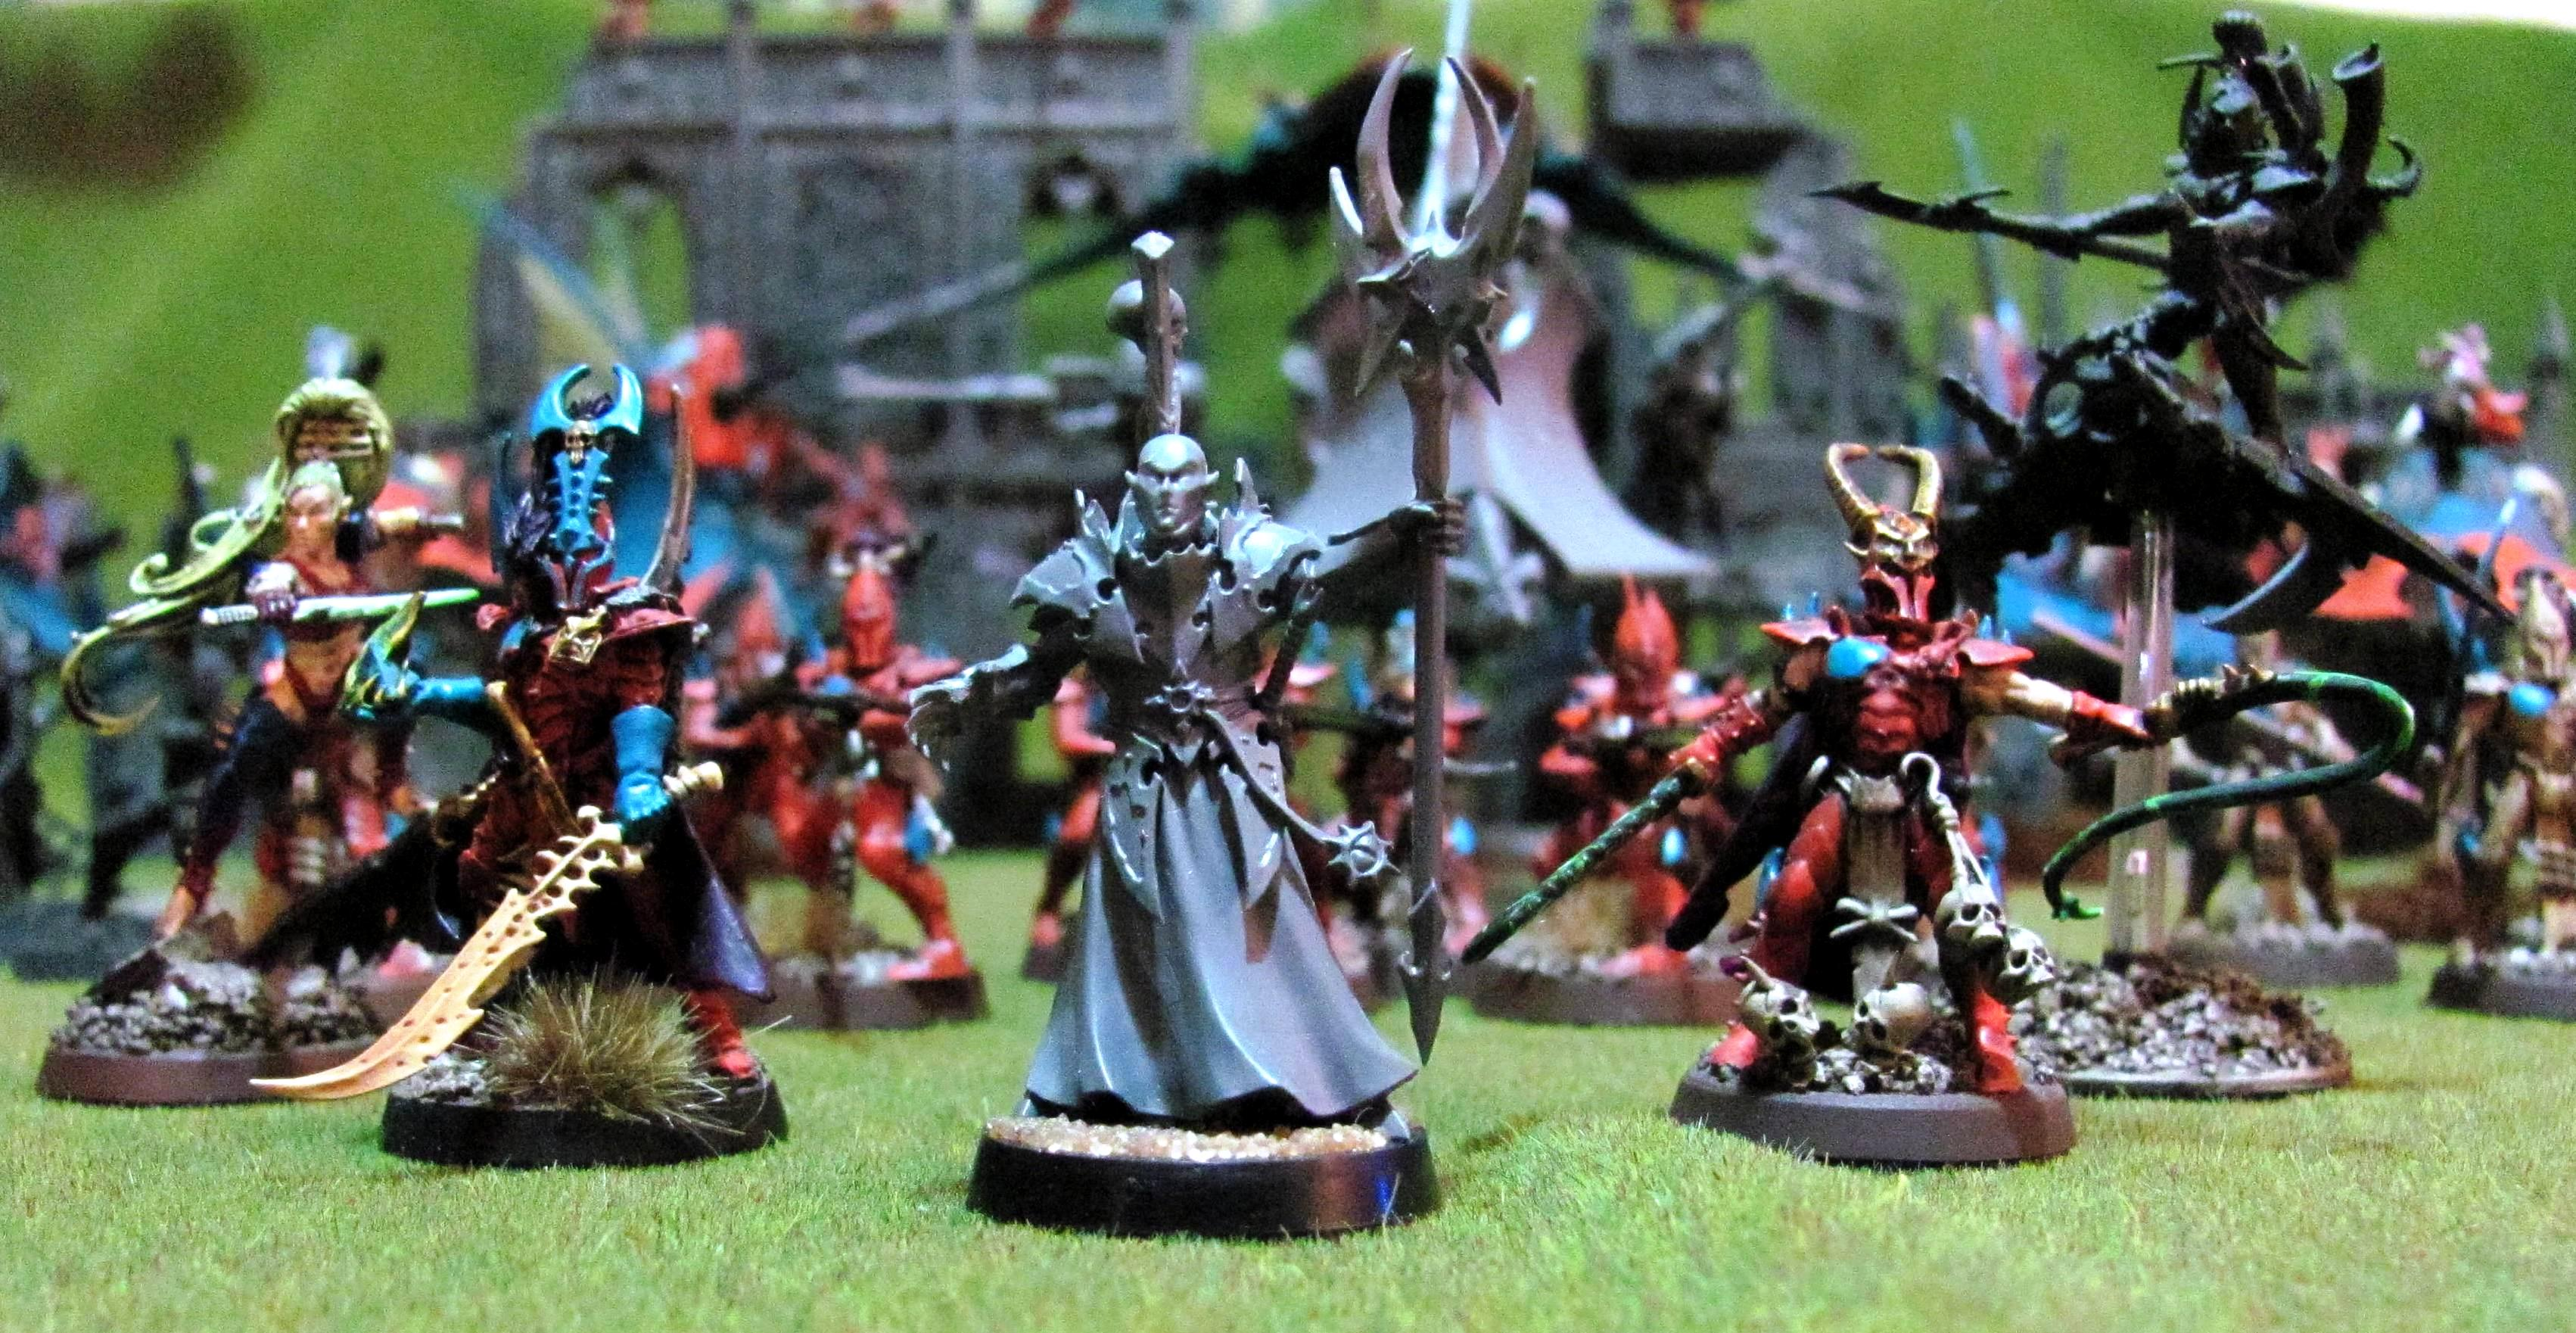 another shot of Vect w/ 2 archons